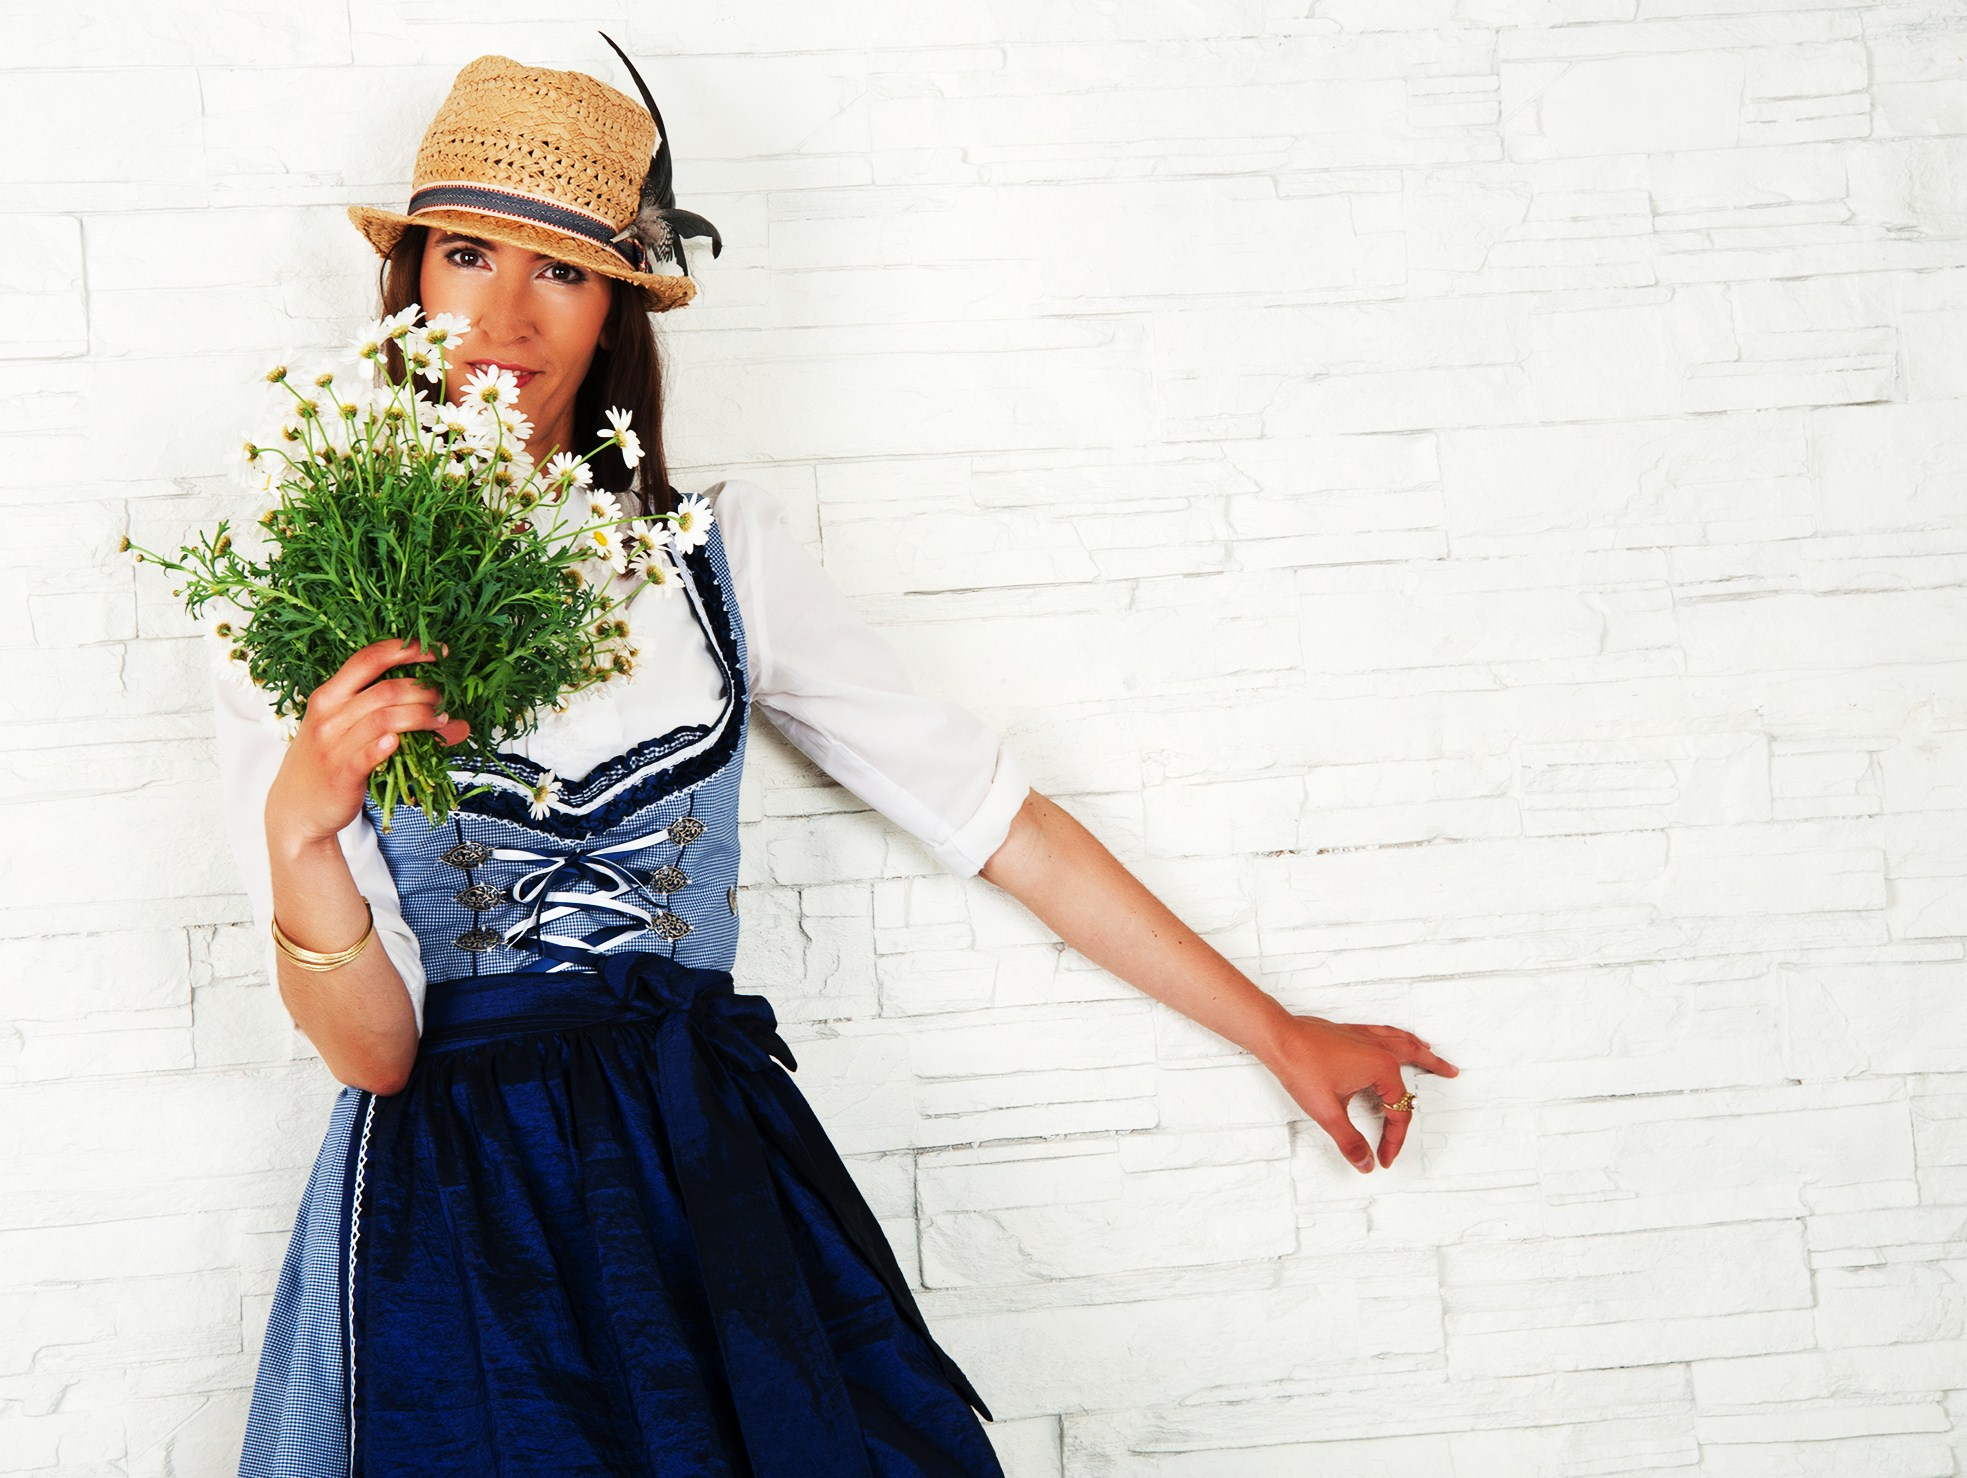 Fashionable_young_woman_posing_in_bavarian_dress_with_flowers_studio_concept_by_studioblom.de